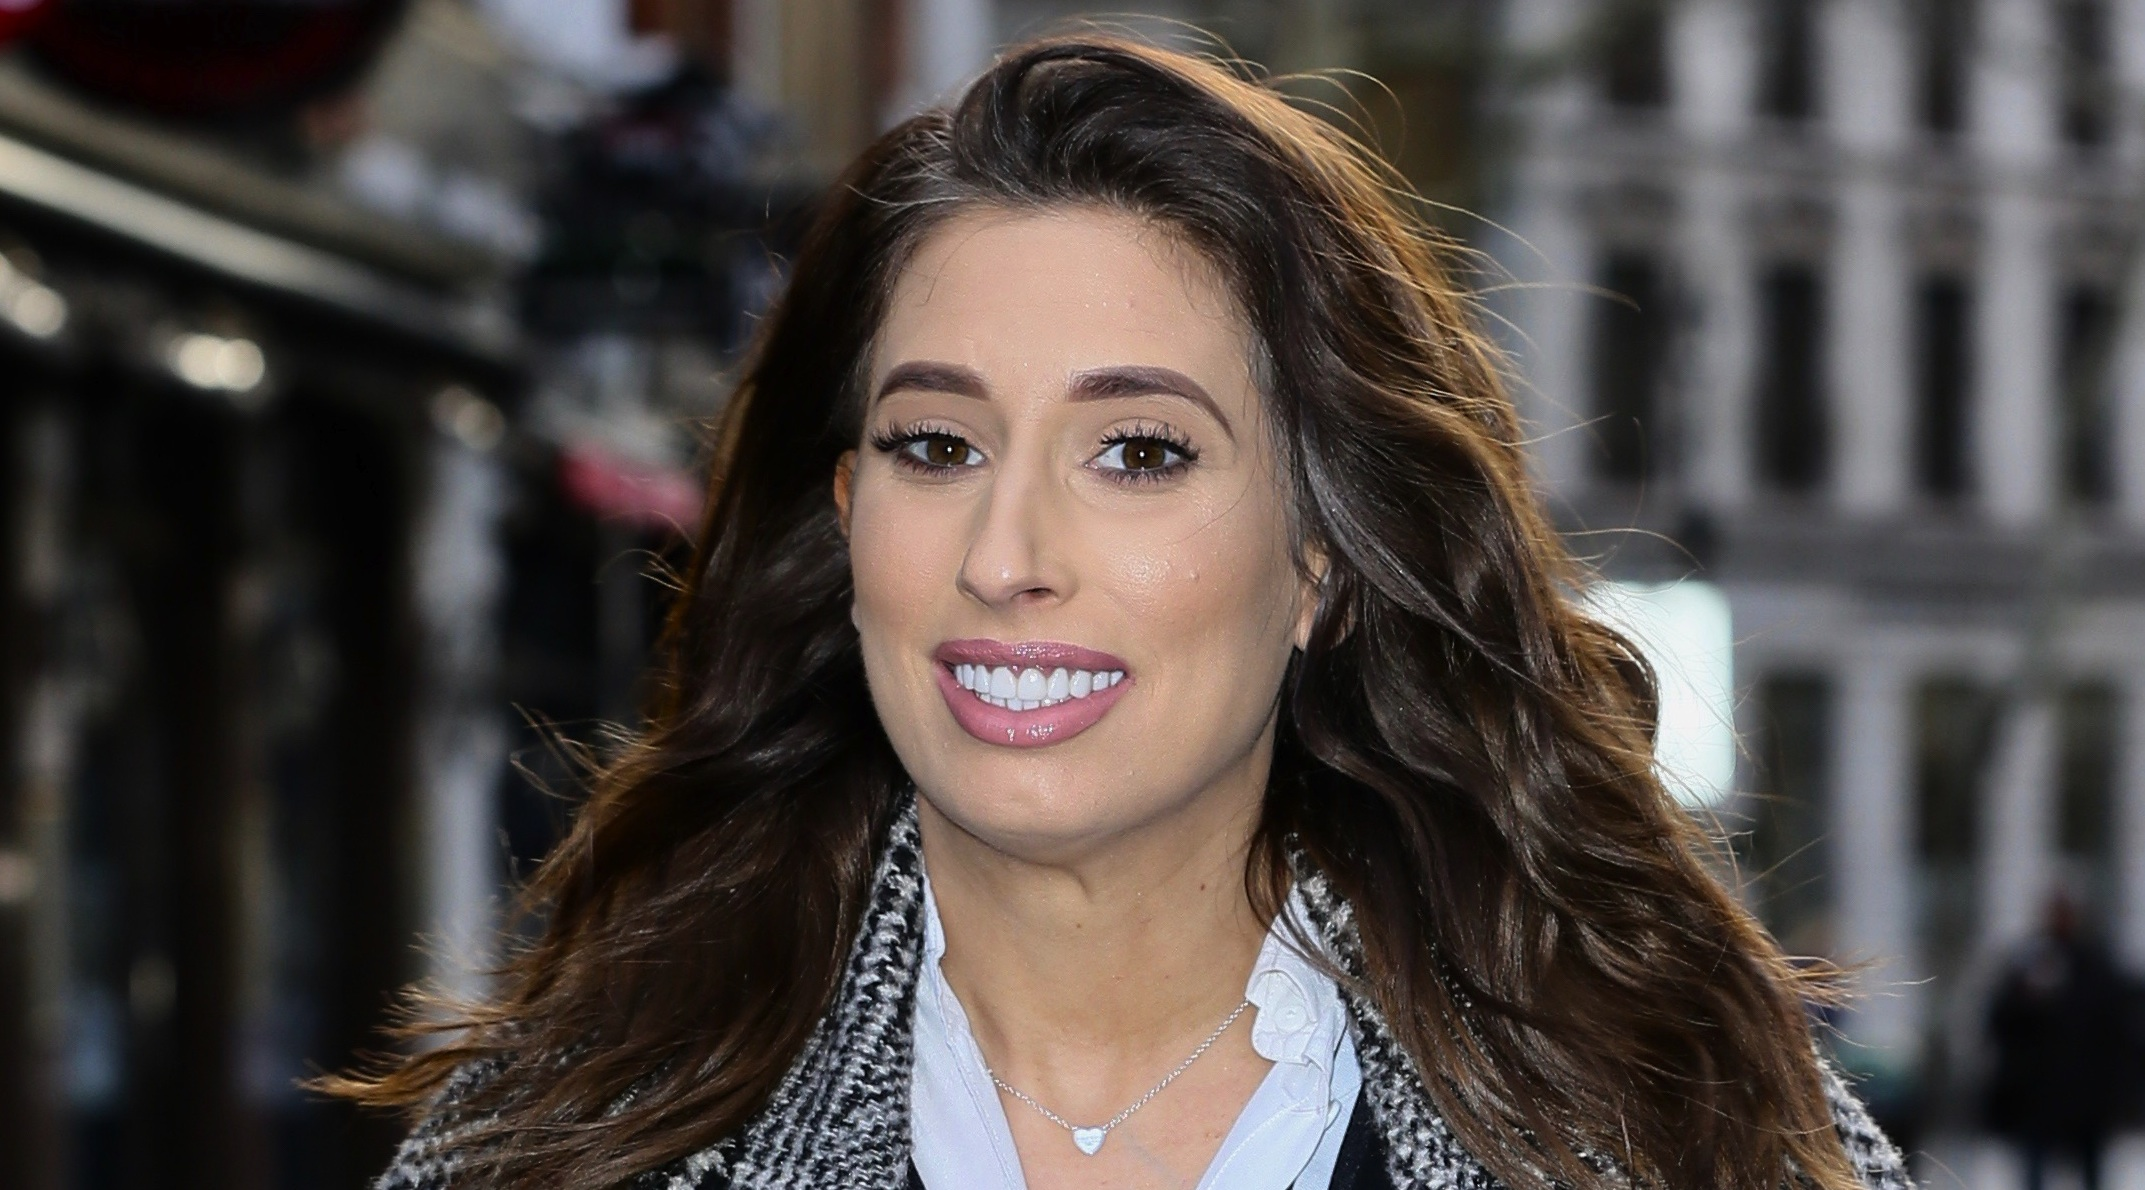 Stacey Solomon compares her stretch marks to GUITAR STRINGS as she shares adorable pic